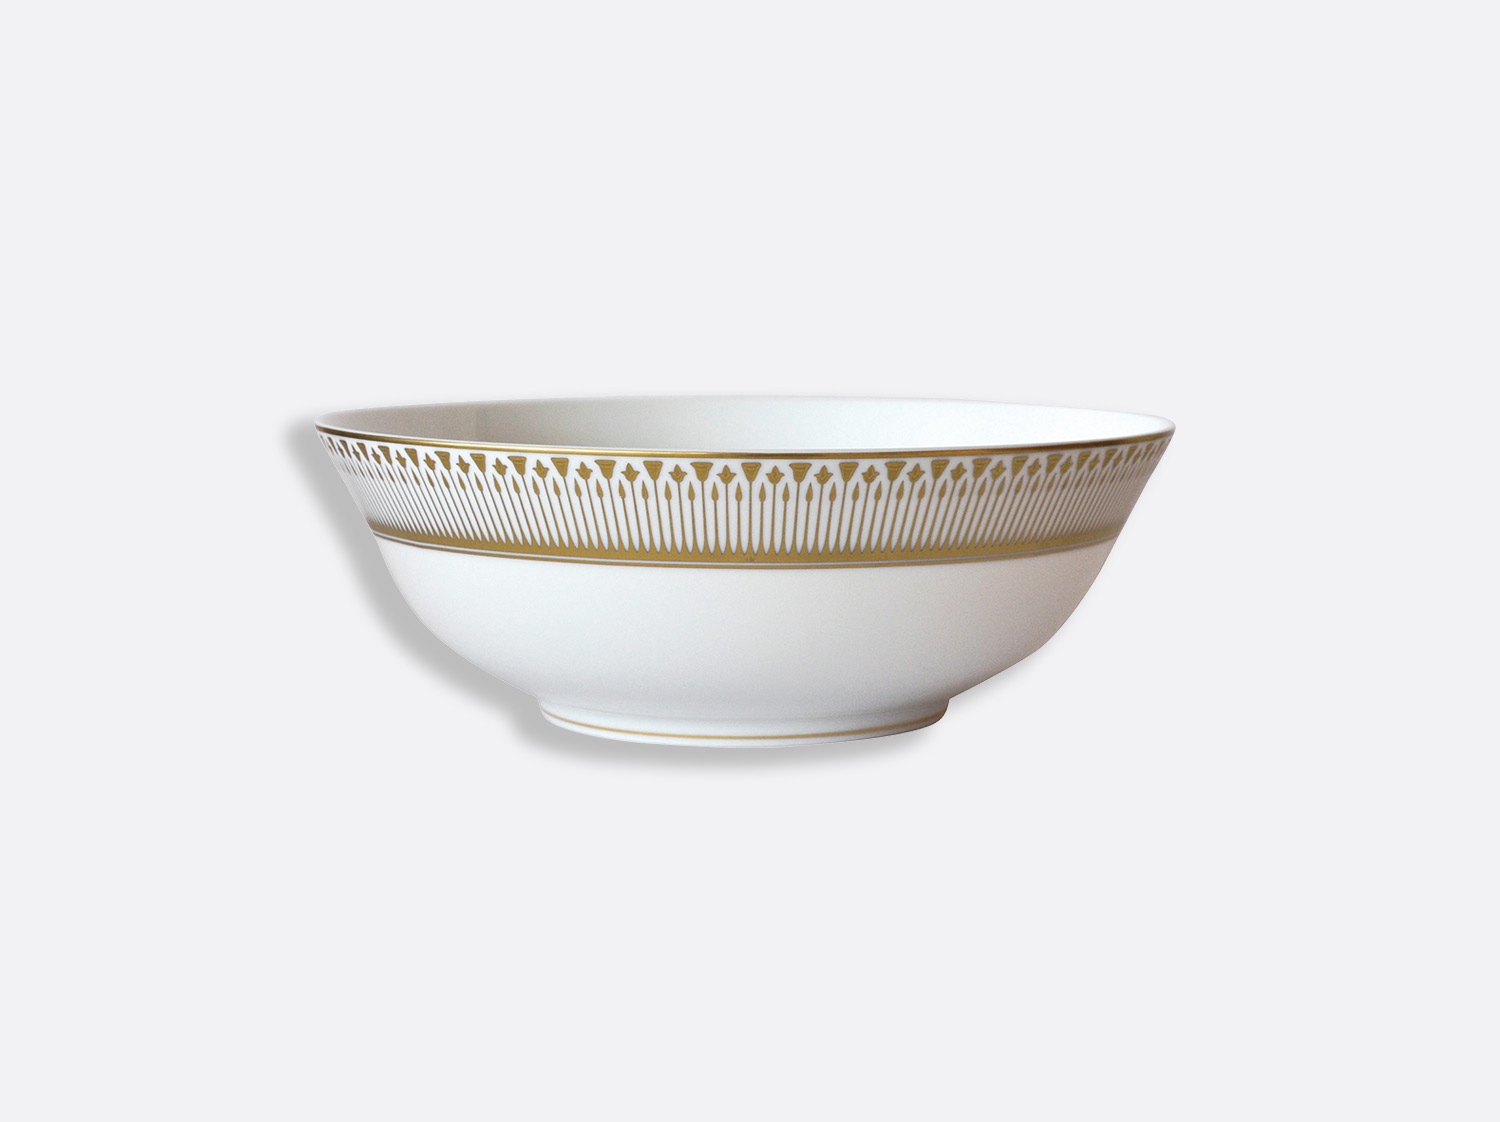 China Salad bowl - 25 cm 1,7 l of the collection Soleil levant | Bernardaud